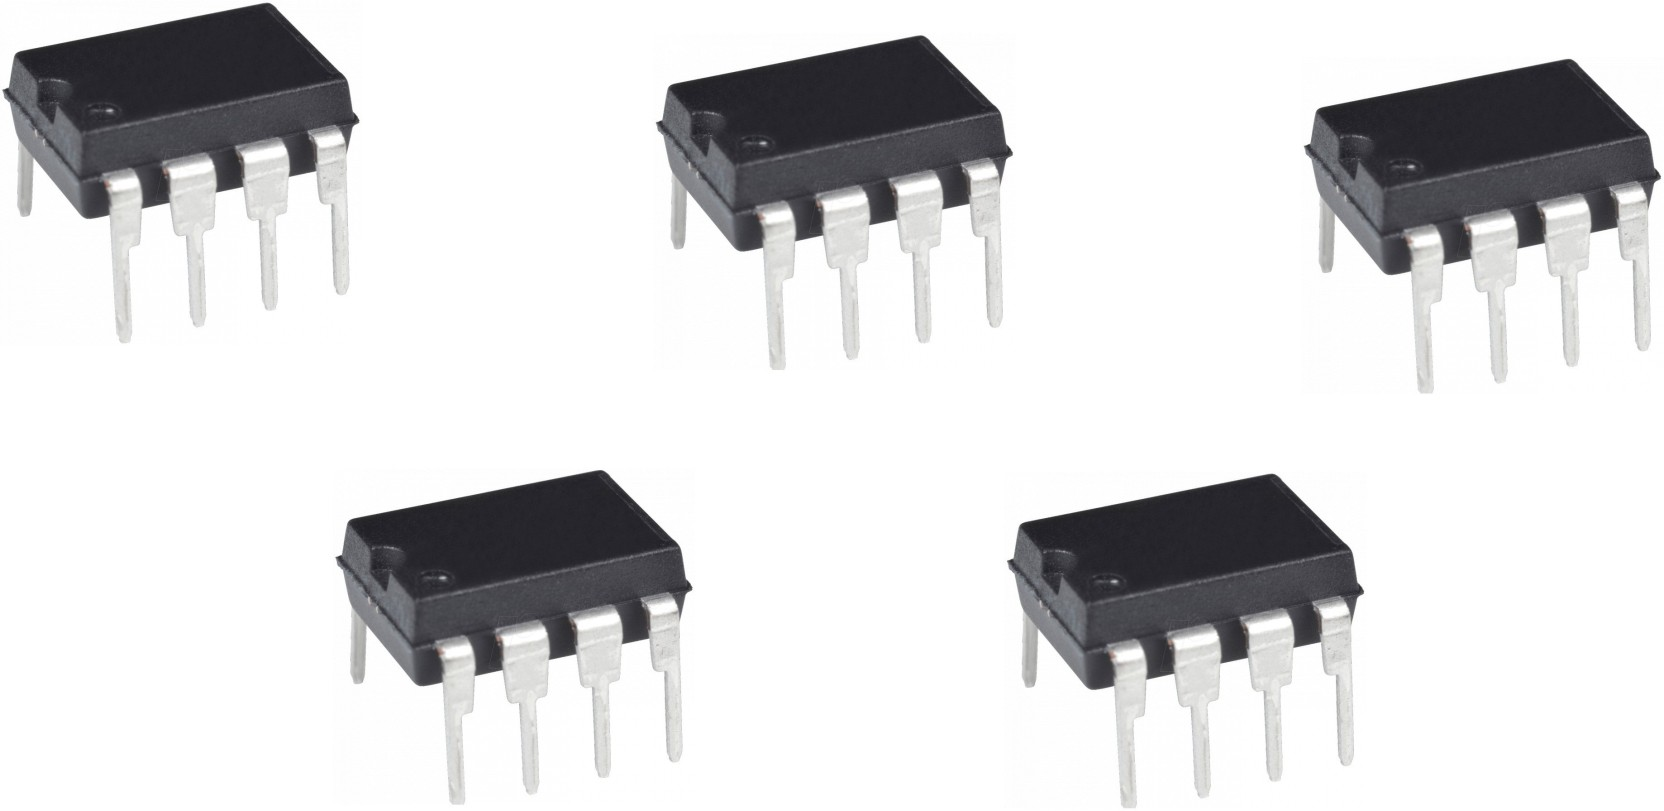 Techwiz 5pcs Lm386 Ic Low Voltage Audio Power Amplifier Educational Voice Circuit Using Operational Electronic Hobby Kit Add To Cart